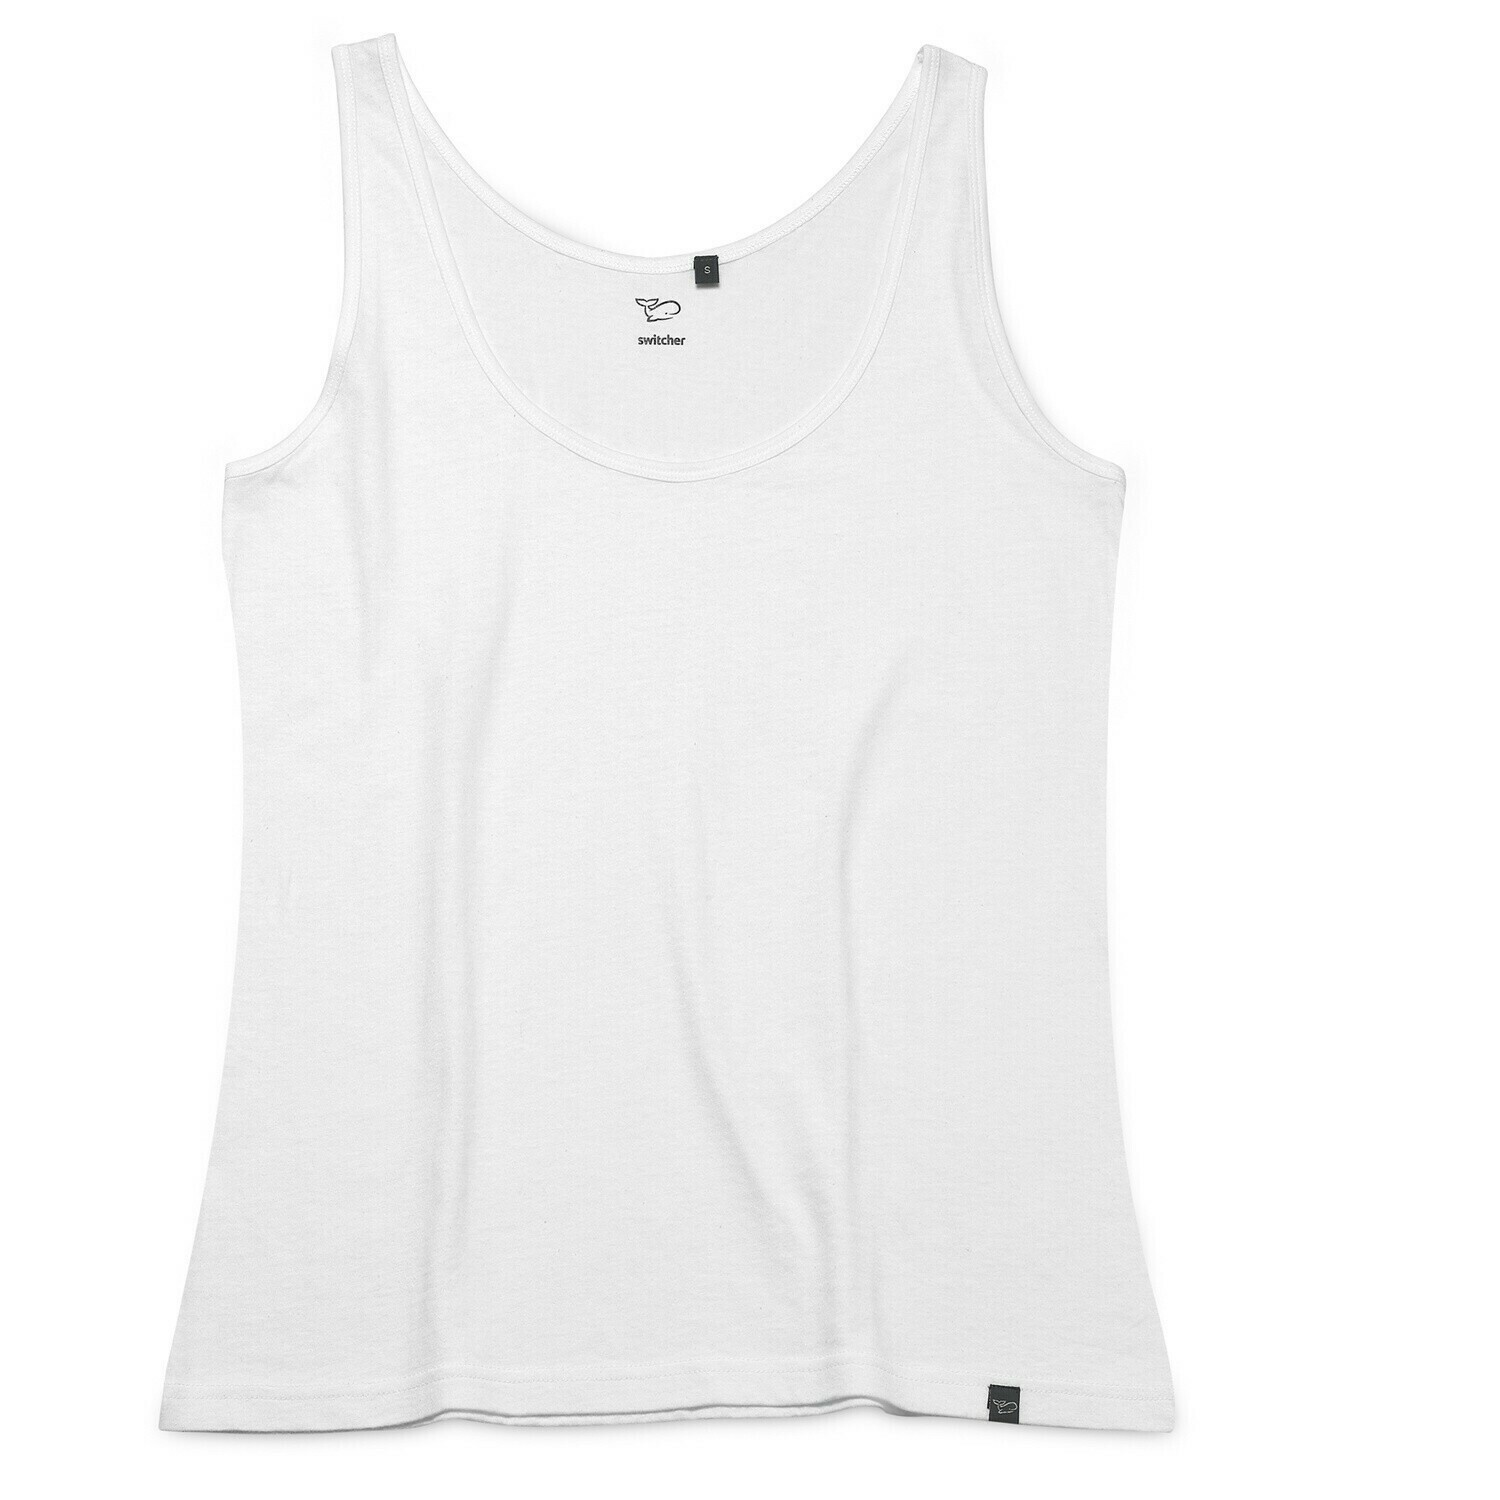 Switcher Tank Top Loana